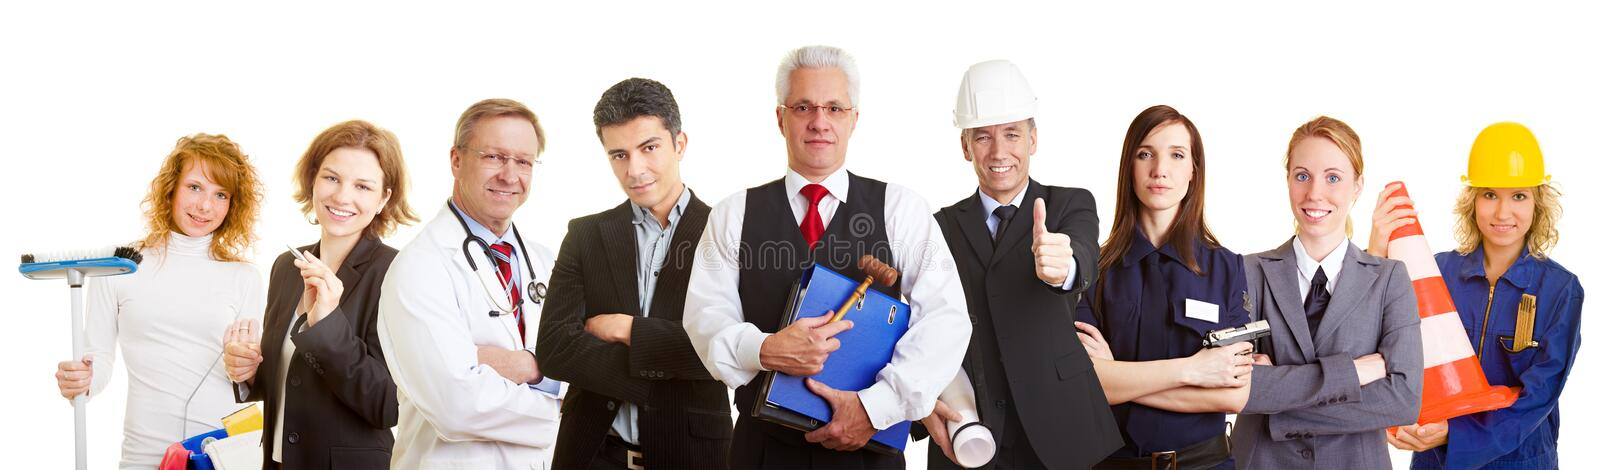 Different occupations as a team. Many different occupations standing as a team group stock images